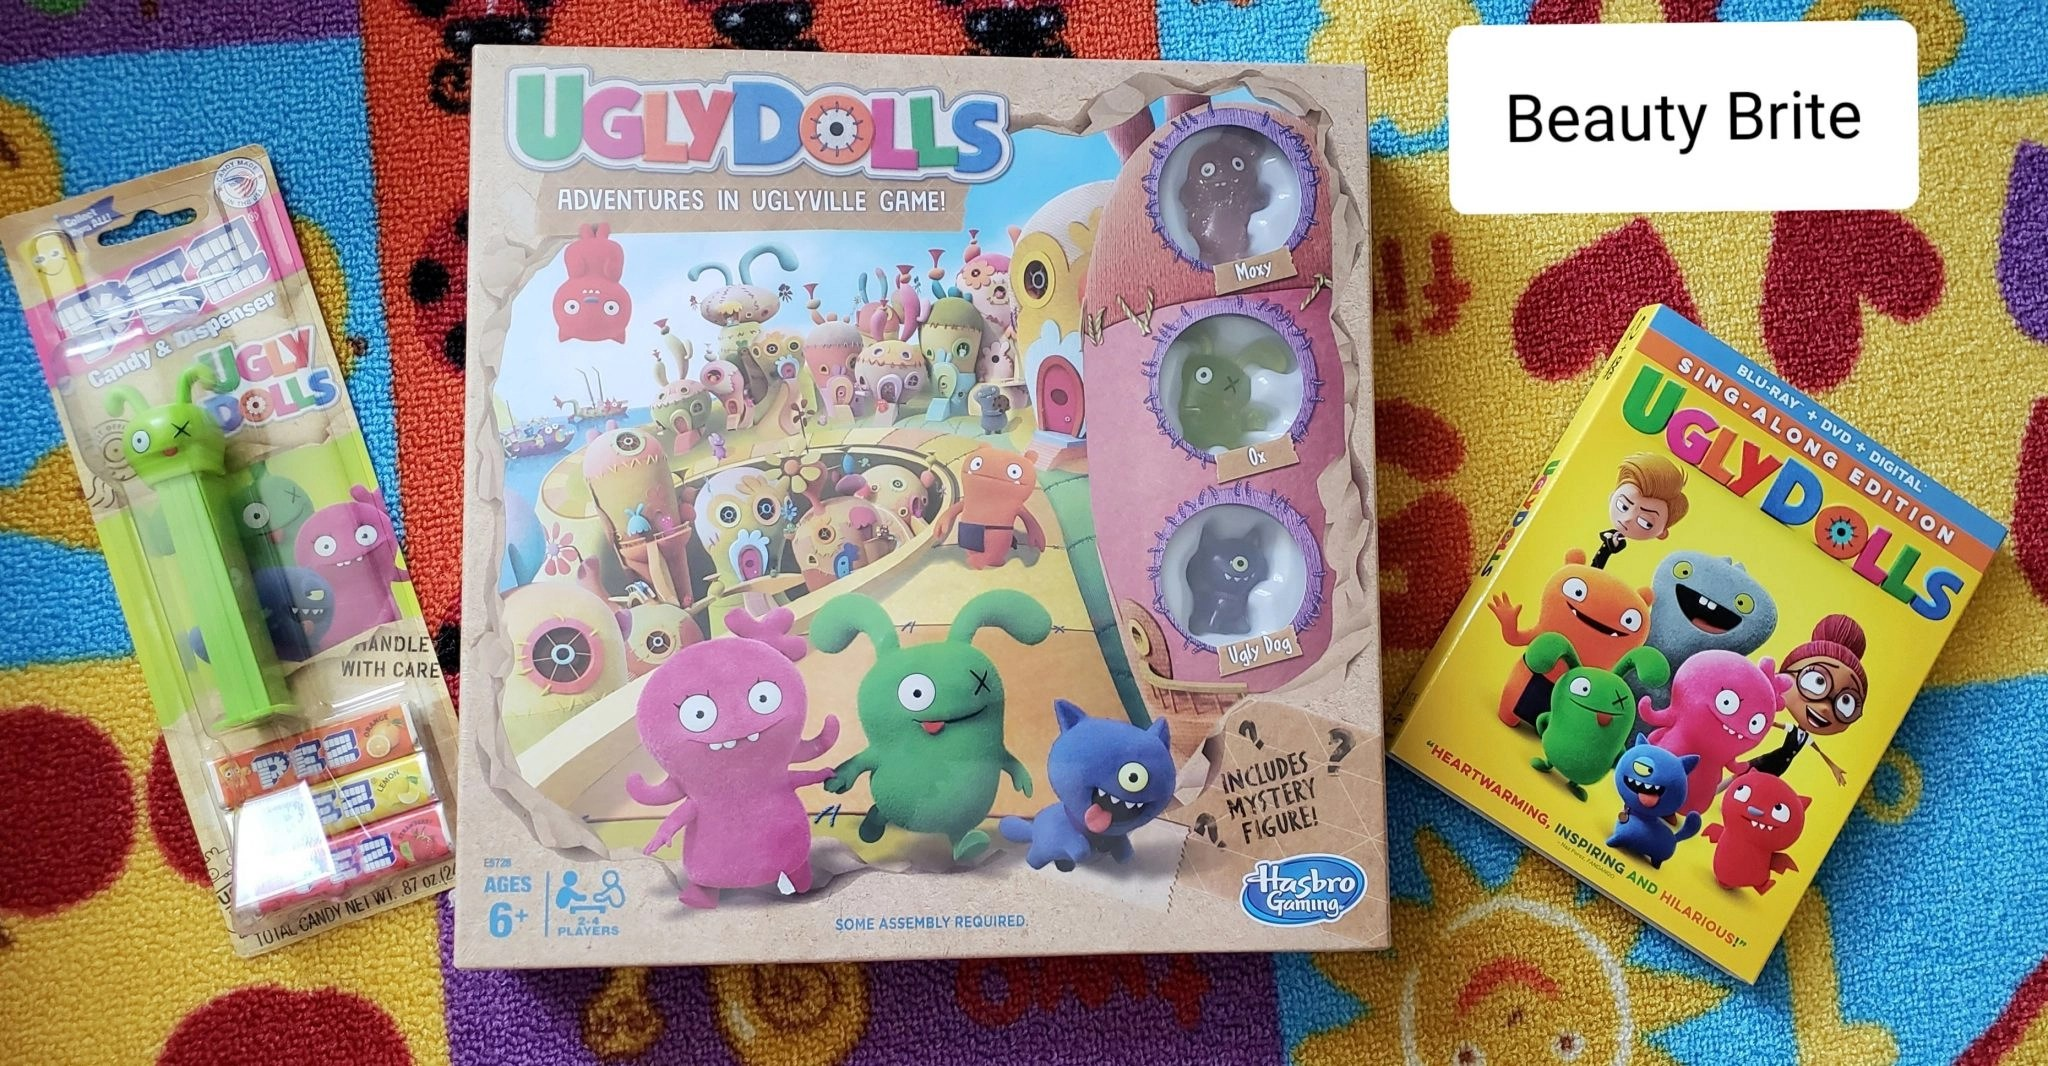 Ugly Dolls Uglyville board game